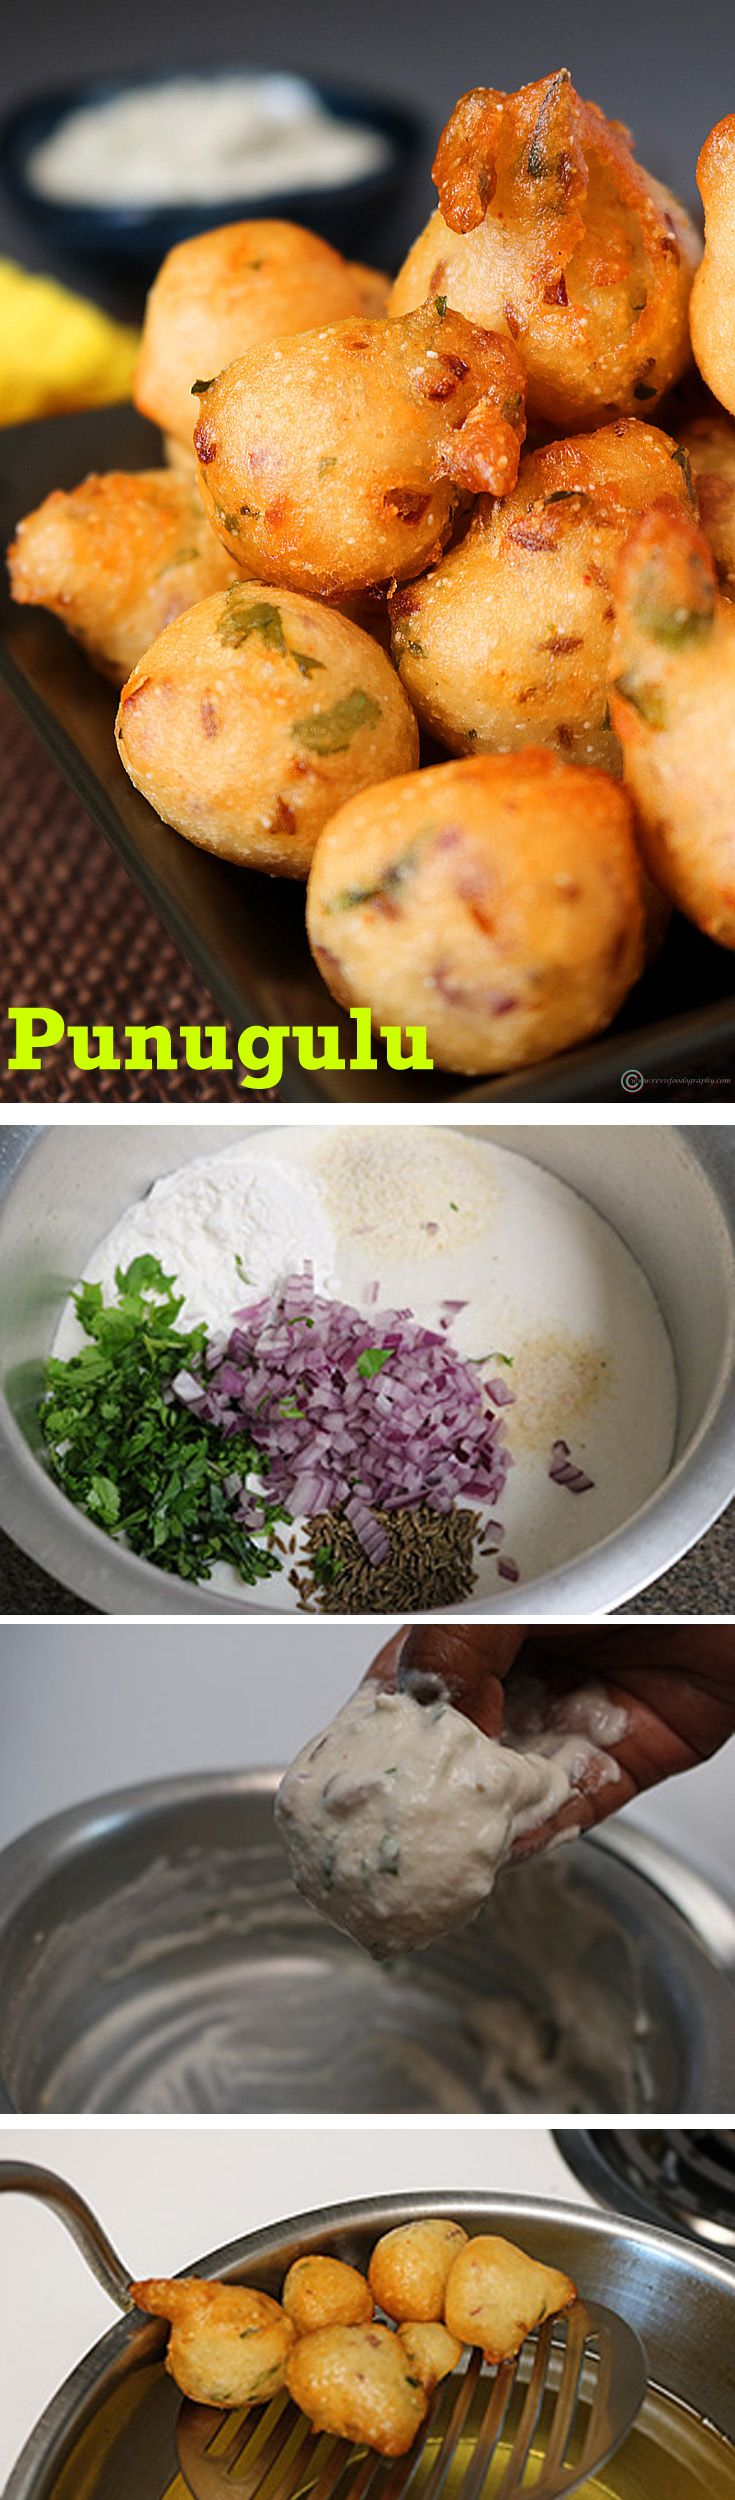 Punugulu | Idli Batter Bonda - An extremely quick snack which you can make in no time. All you need is some left over idli batter and a few basic ingredients from your pantry.